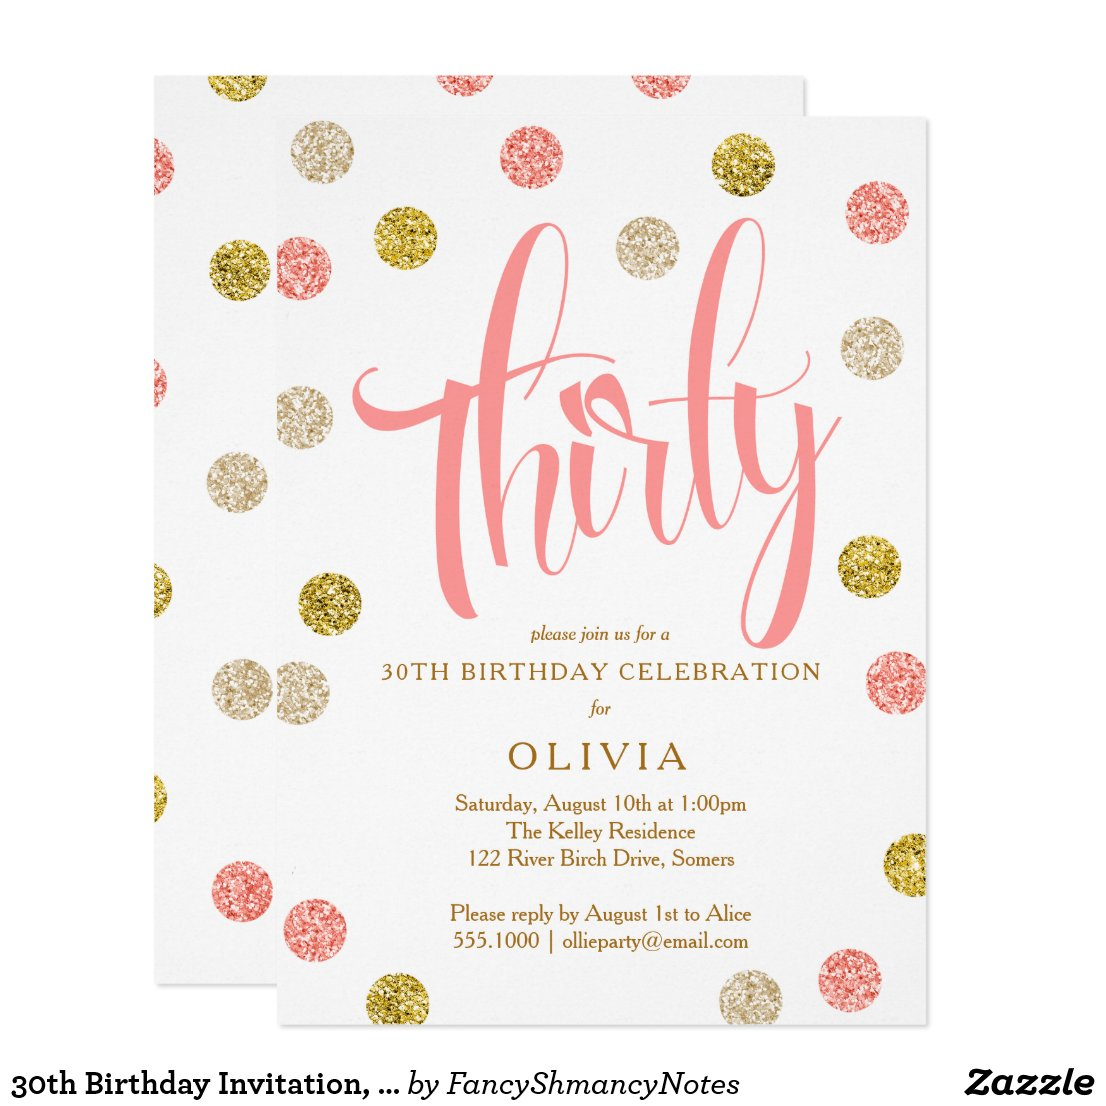 30th Birthday Invitation, Pink and Gold Invitation